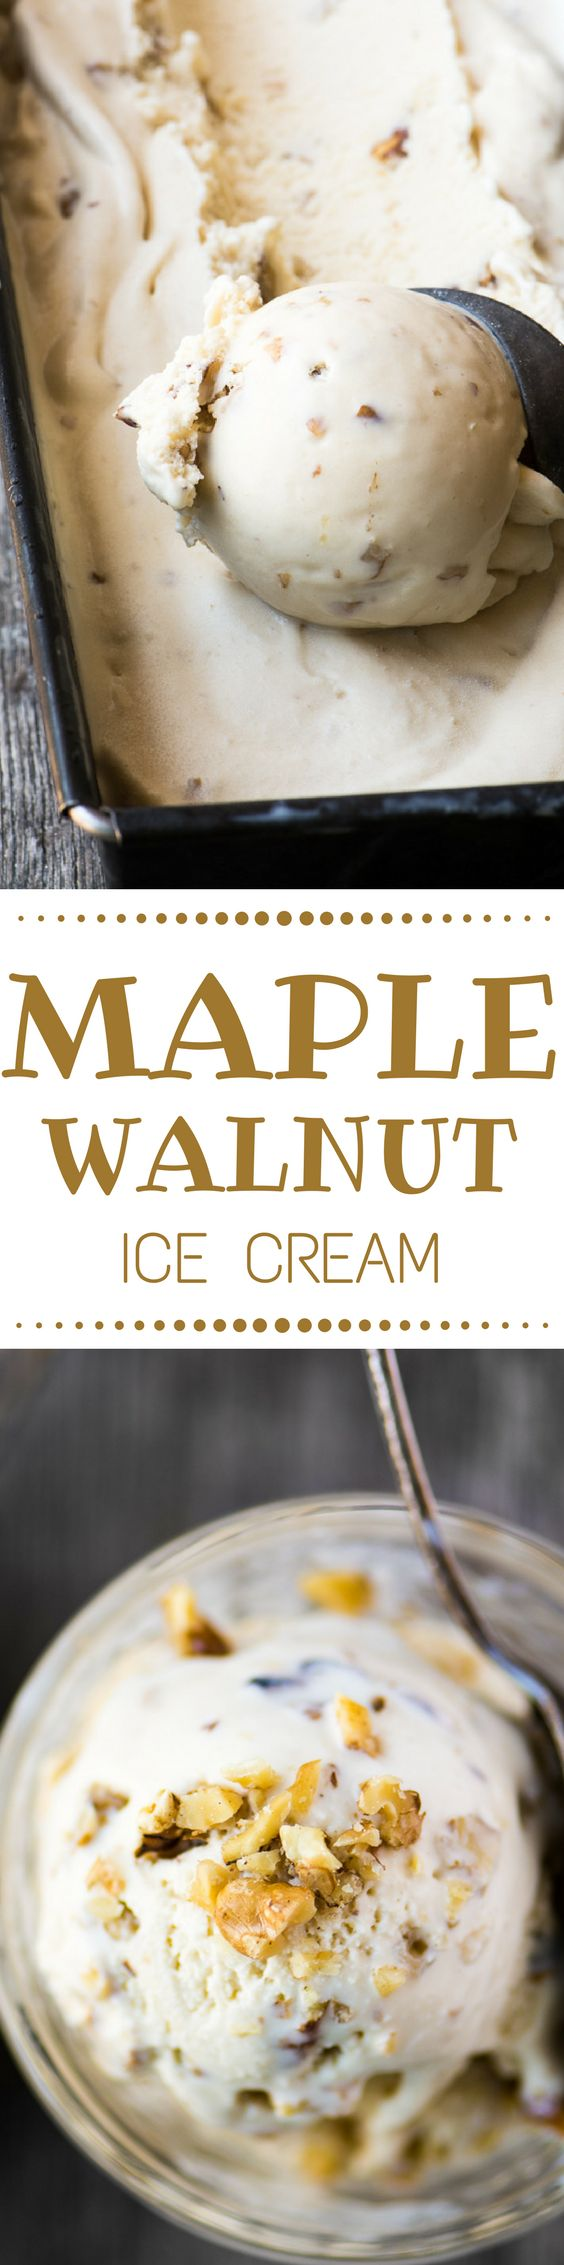 Maple Walnut Ice Cream has to be one of the great flavors of all time. This New…